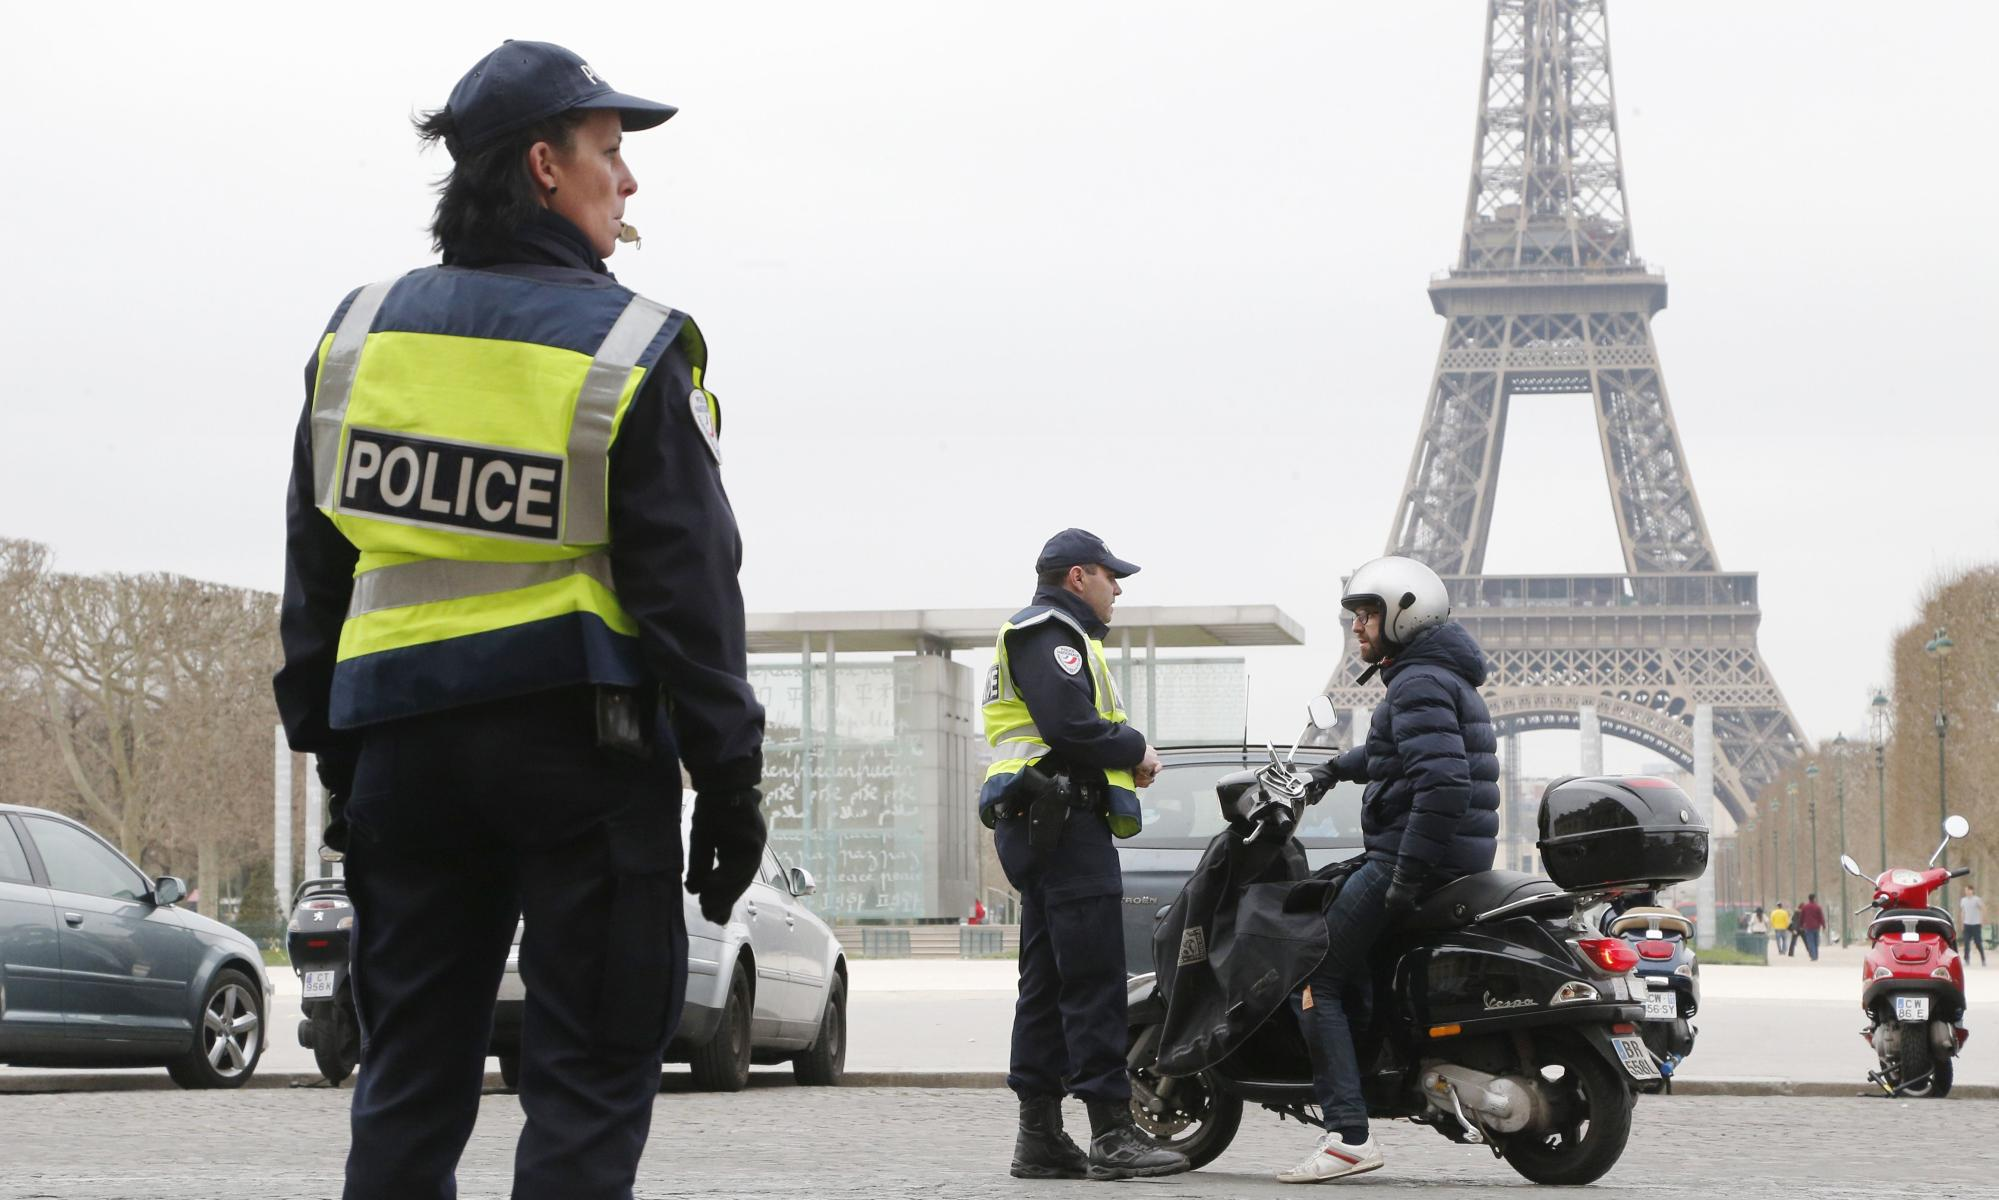 Paris smog forces authorities to get tough on traffic